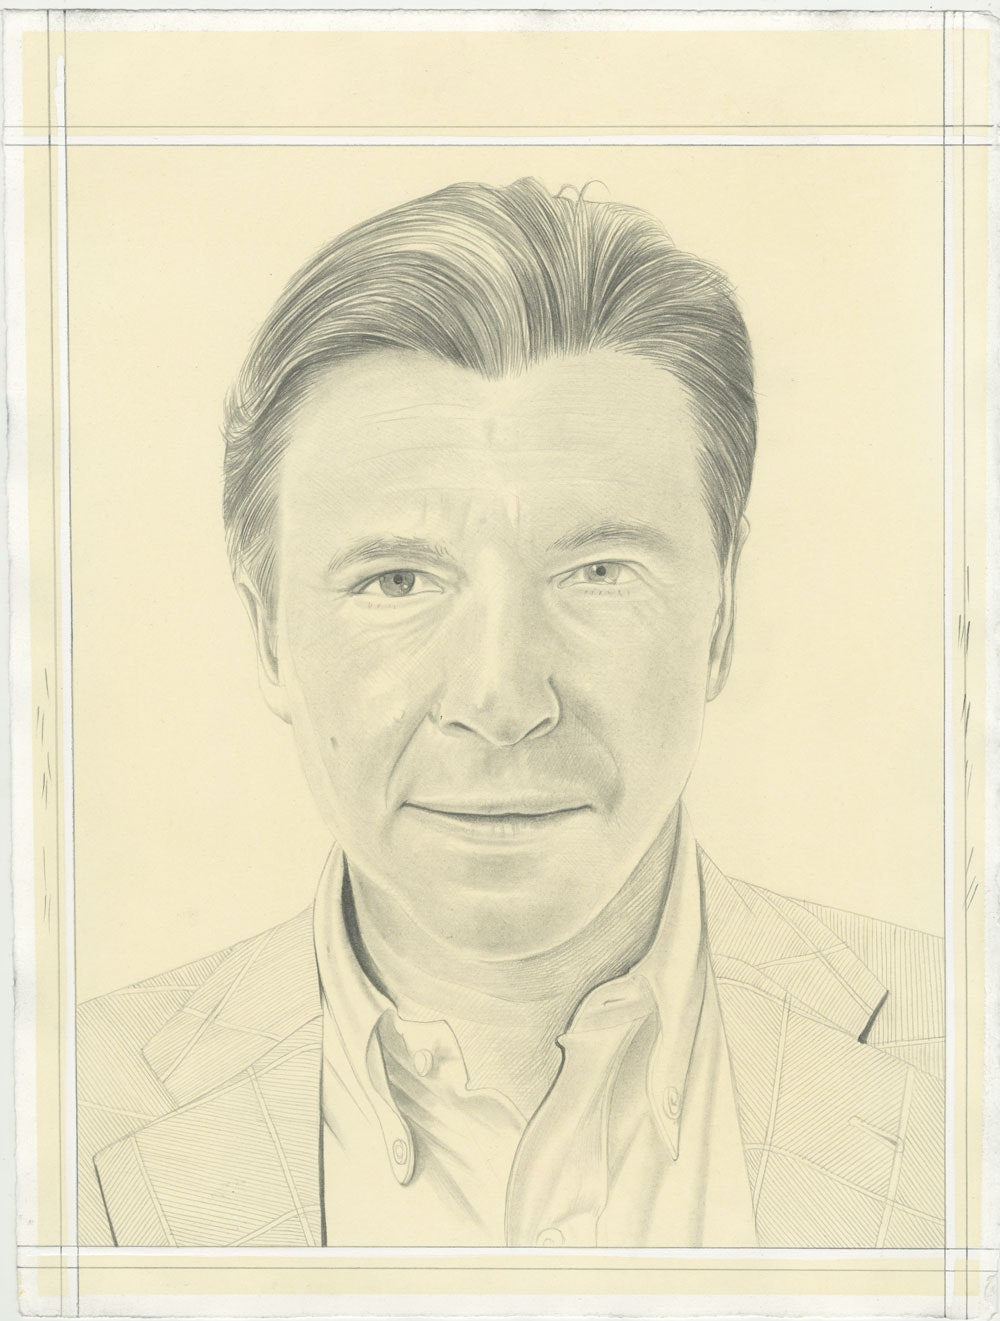 Robert Polidori. Pencil on Paper by Phong H. Bui.